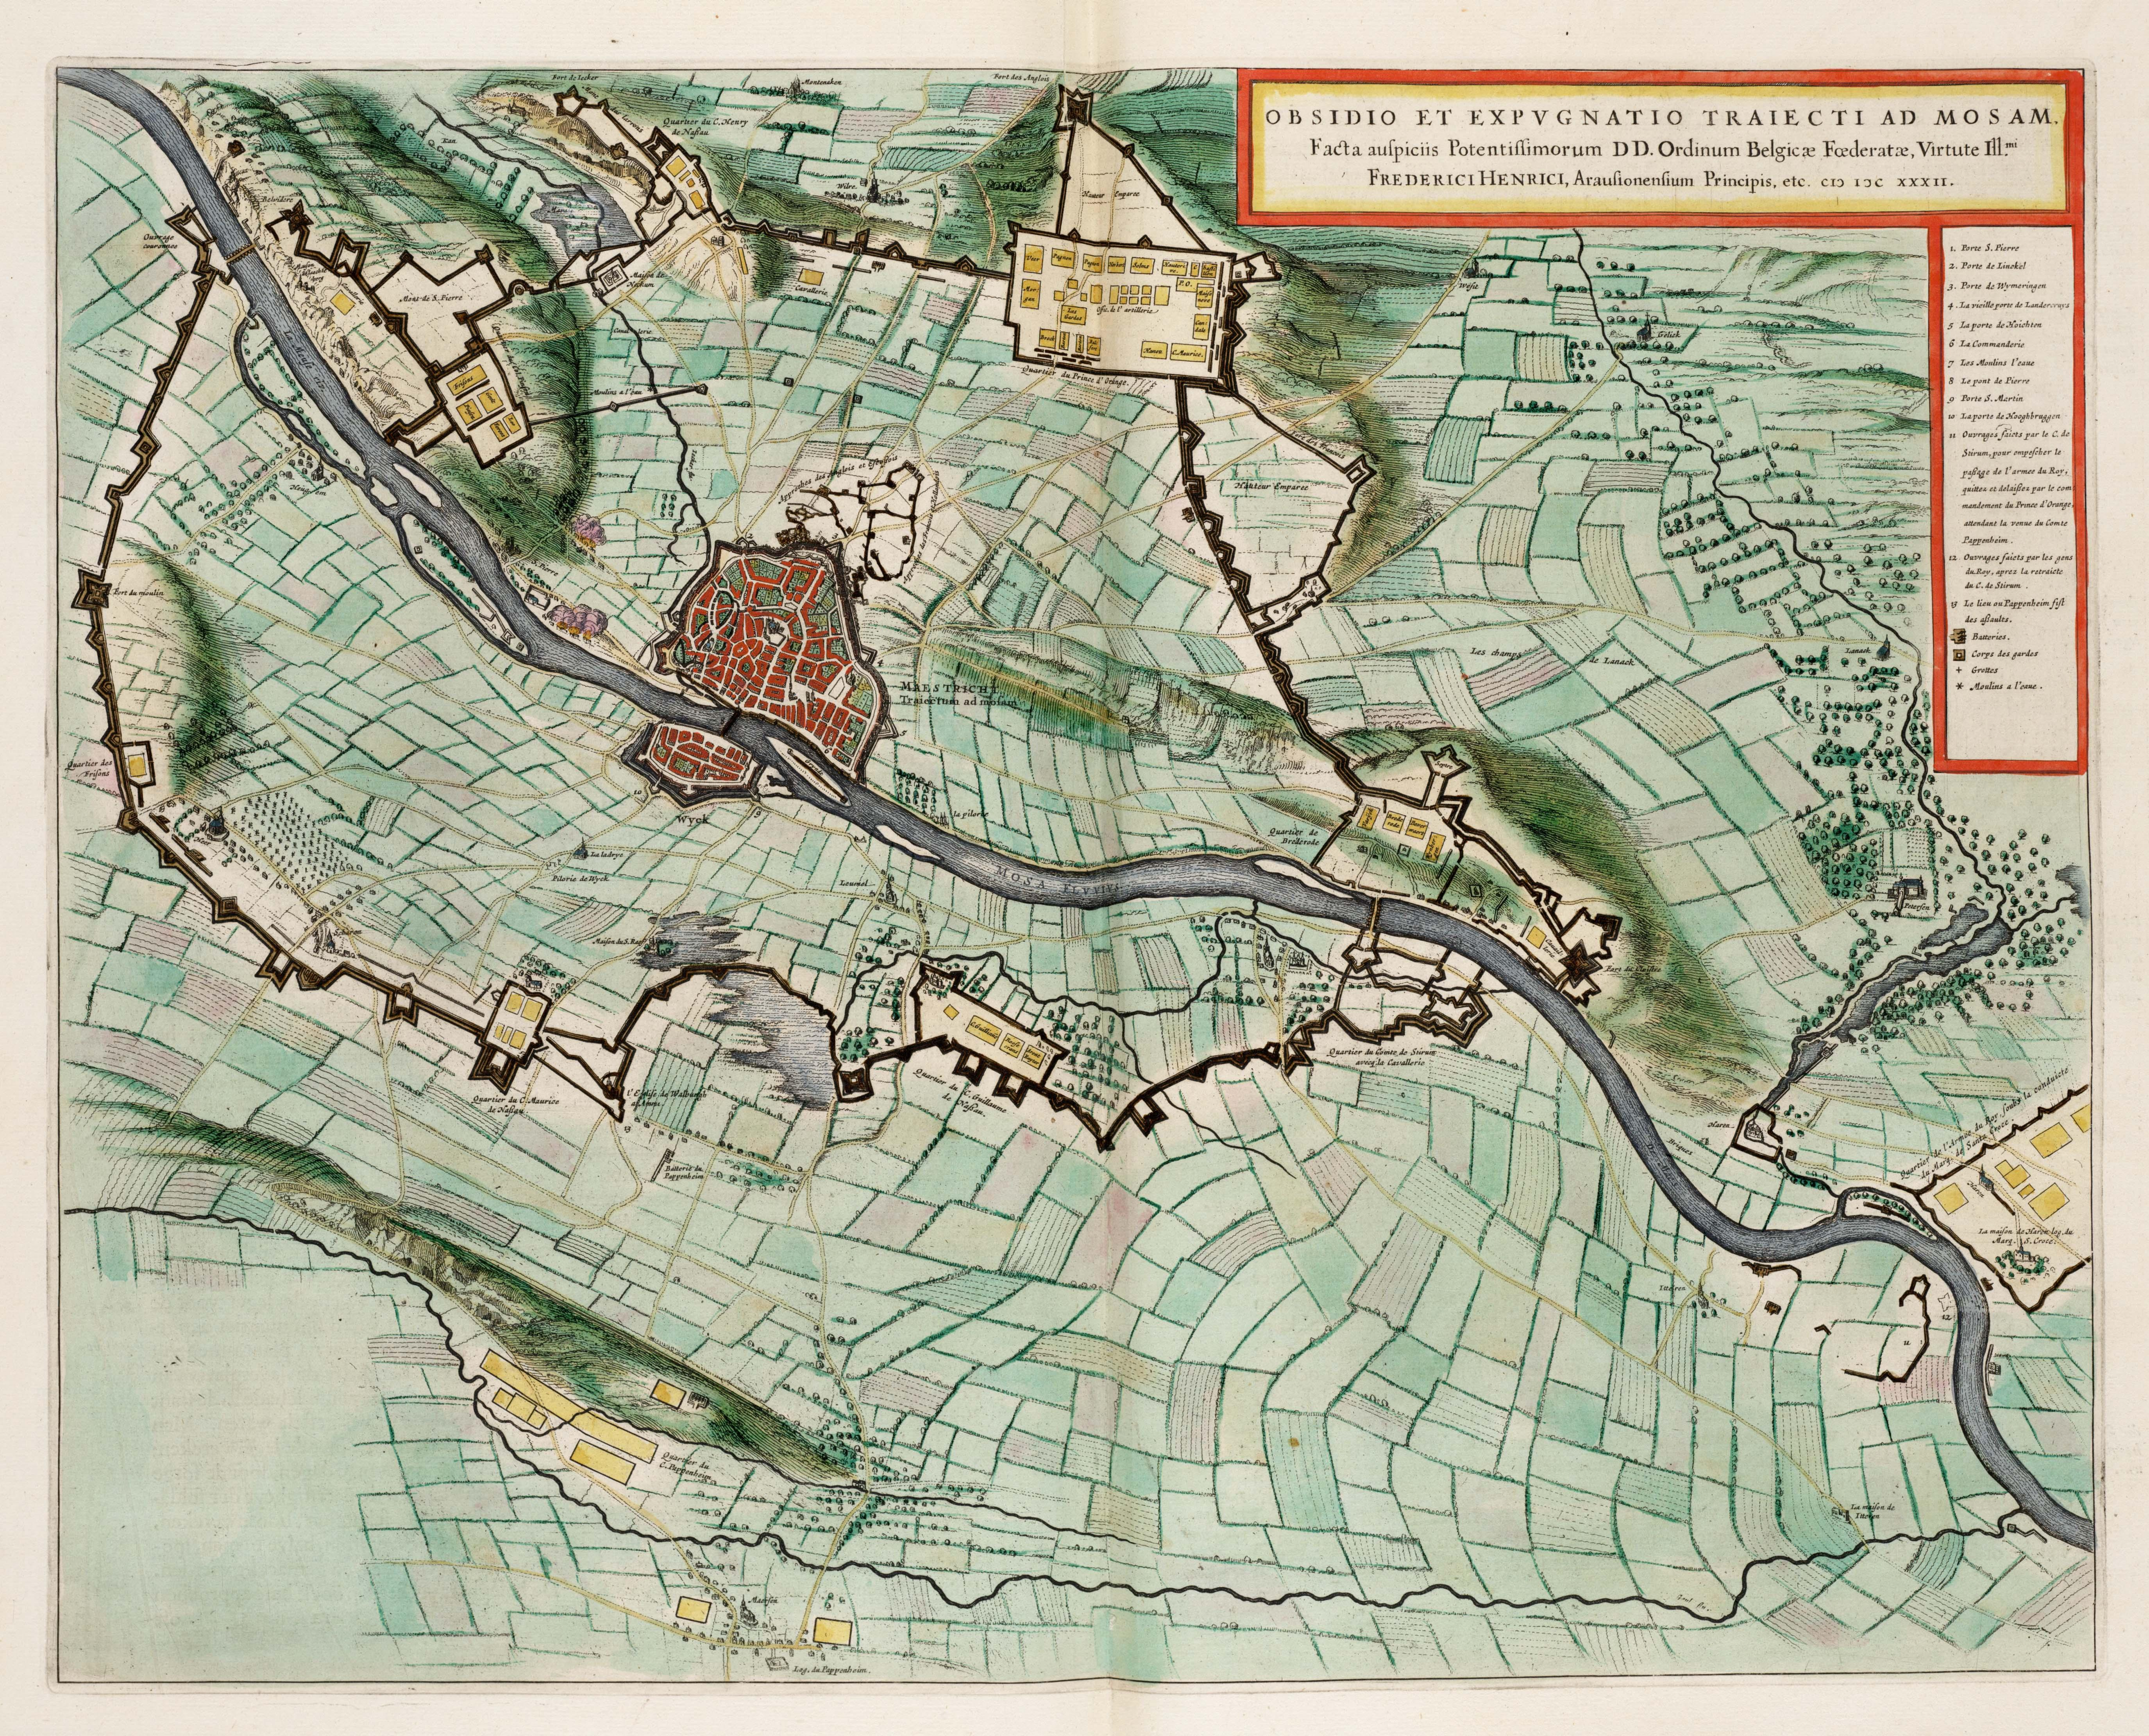 Файл:Siege of Maastricht by Frederick Henry in 1632 - Obsidio et Expugnatio  Traiecti ad